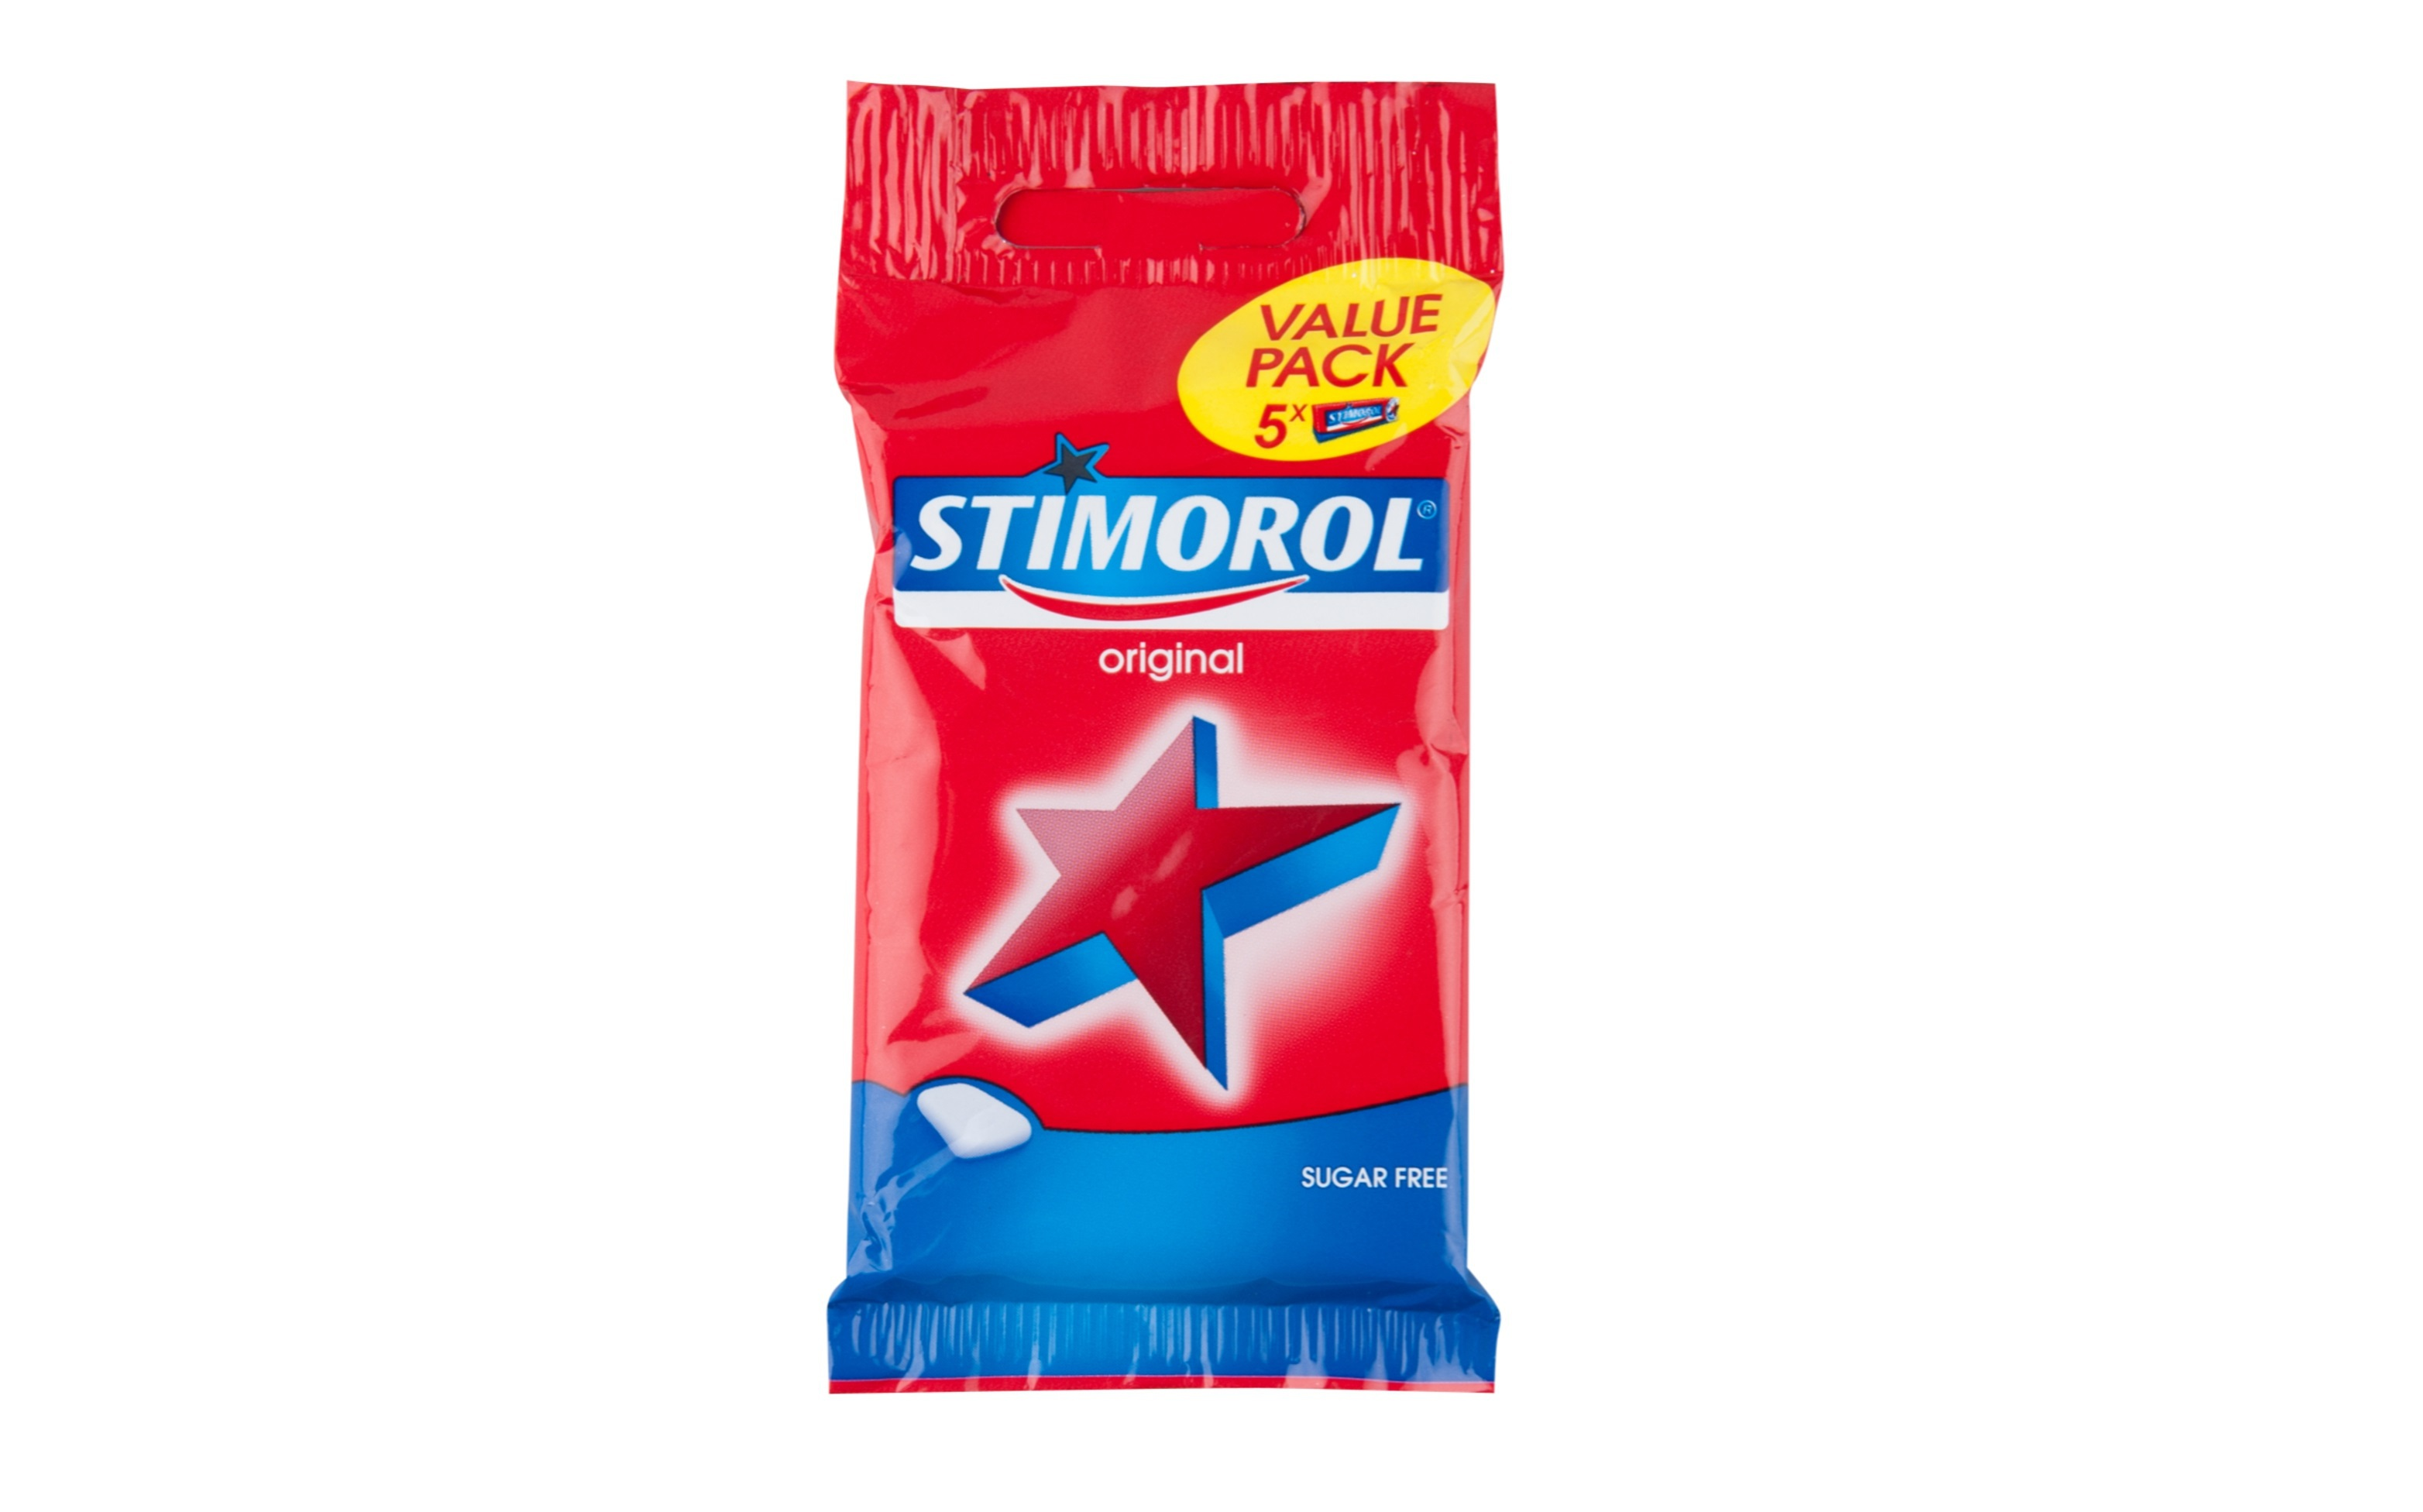 Pictures Of Stimorol